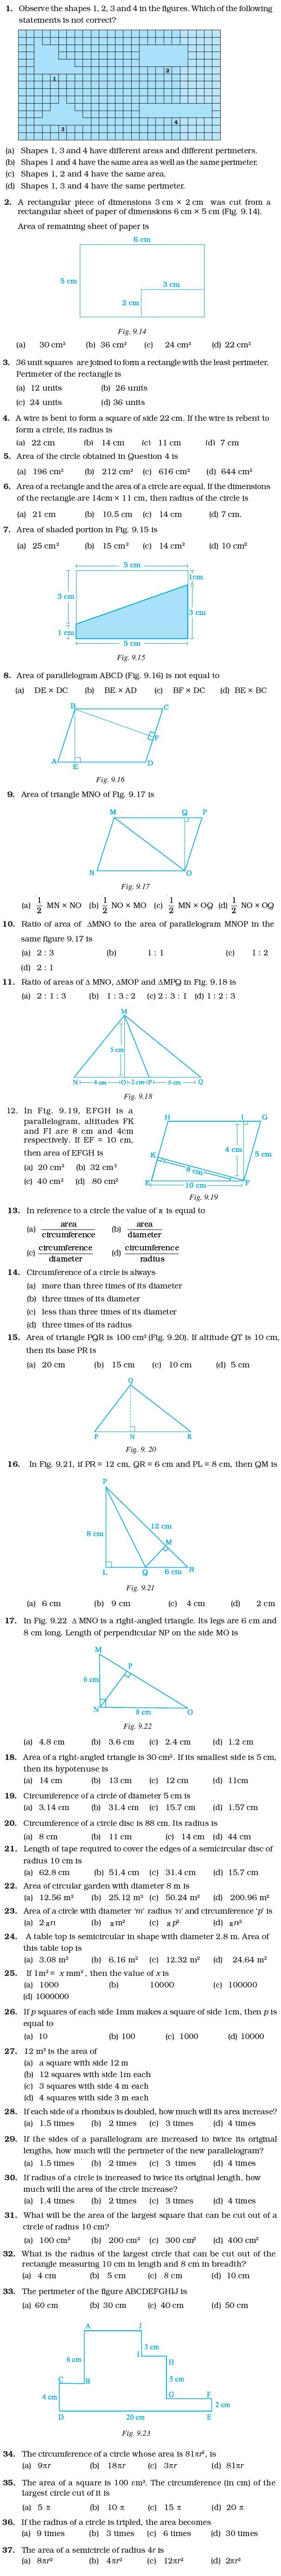 Class 7 Important Questions For Maths Perimeter And Area Math This Or That Questions Class [ 5546 x 606 Pixel ]